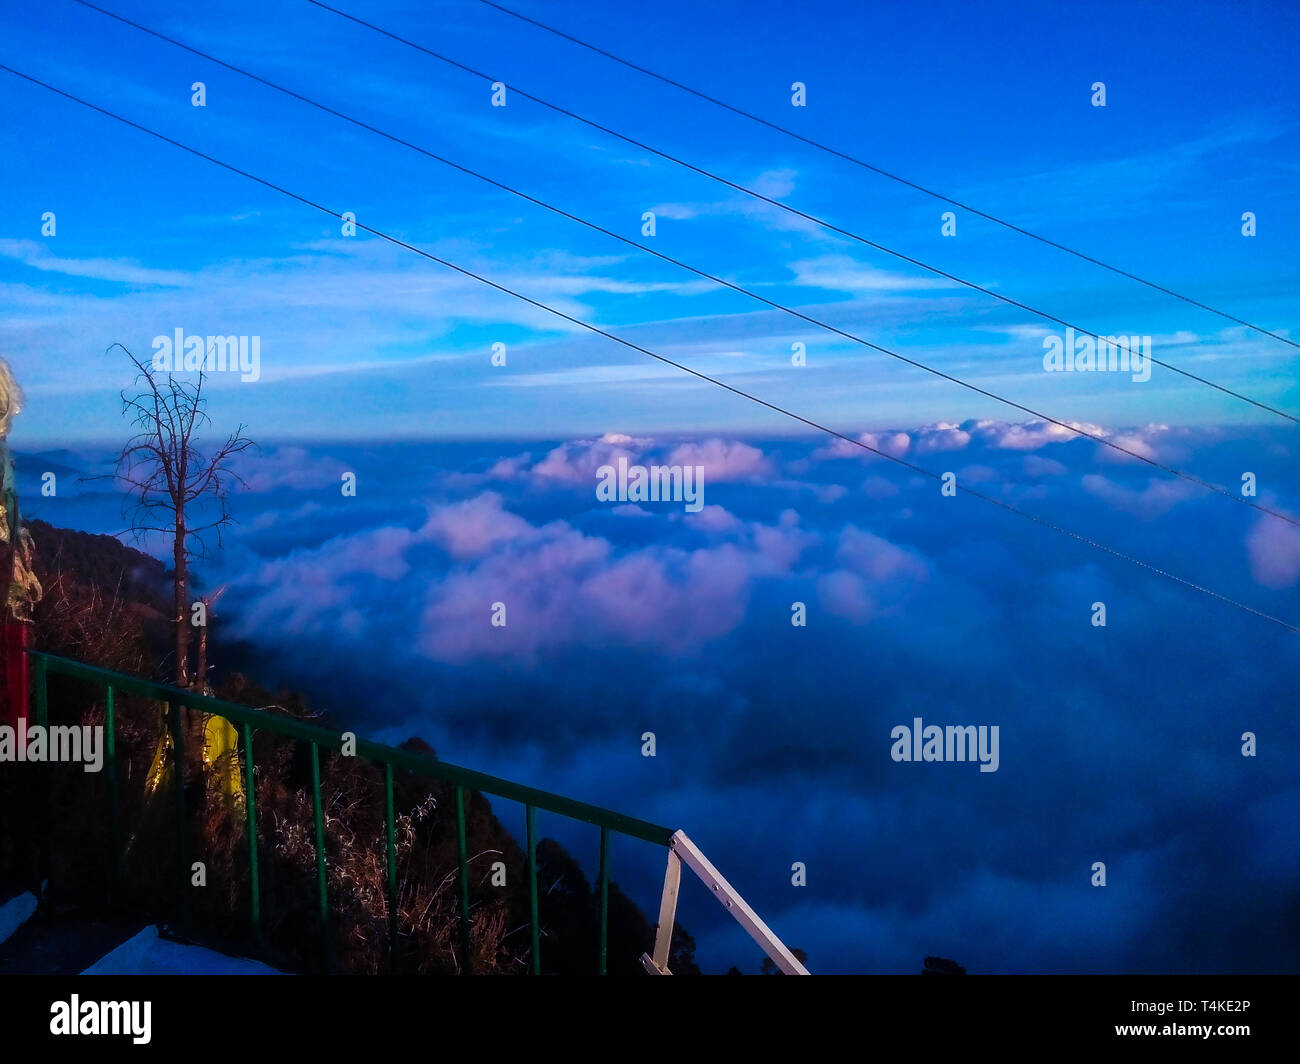 If you've noticed some strange blue clouds in the night sky recently, you're not alone. Uncharacteristically blue nighttime clouds, usually seen ... - Stock Image